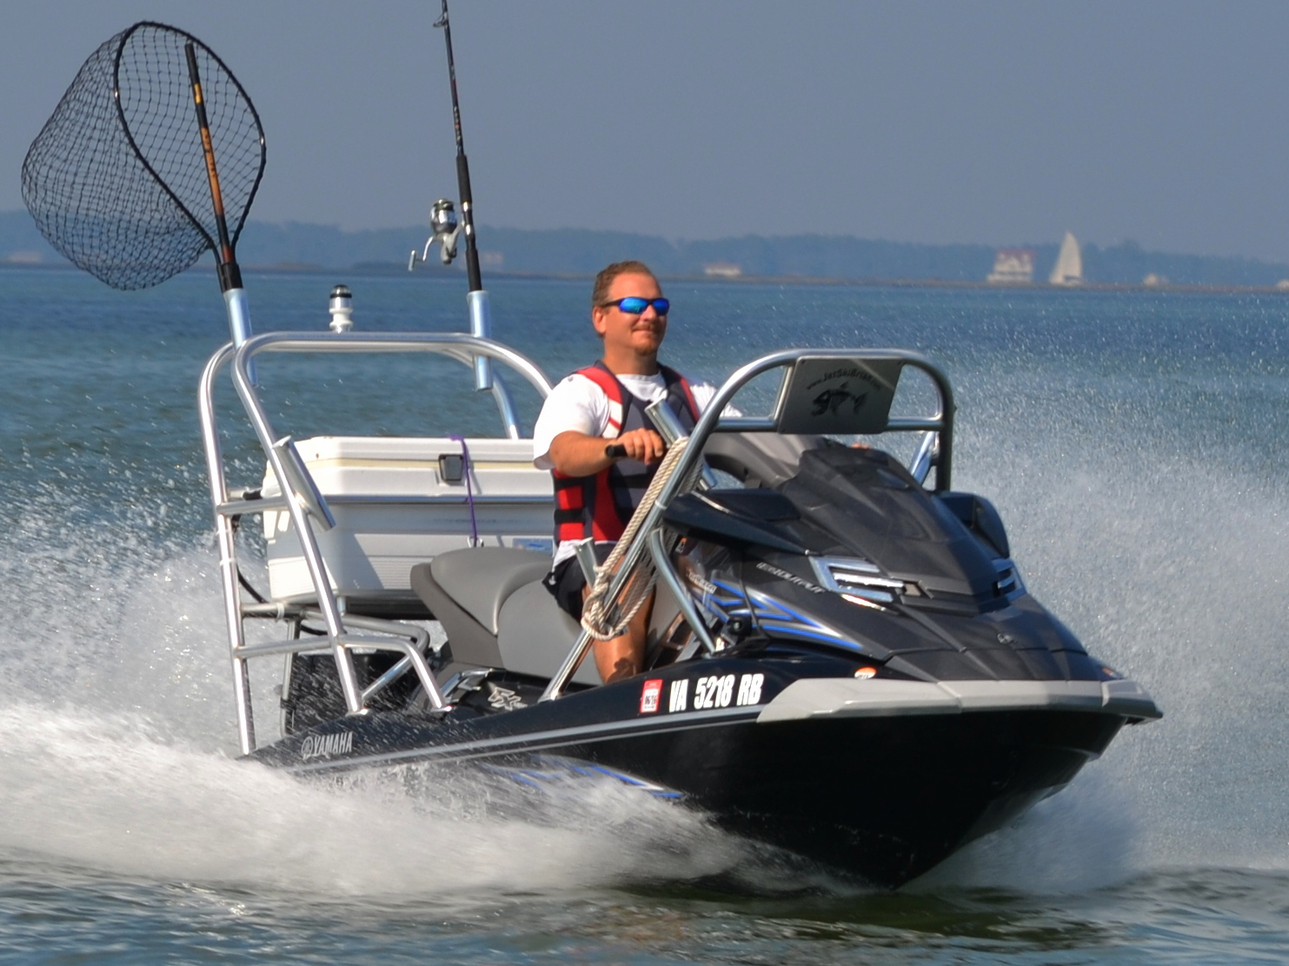 Jet ski fishing chesapeake bay fishing report october 04 for Best jet ski for fishing